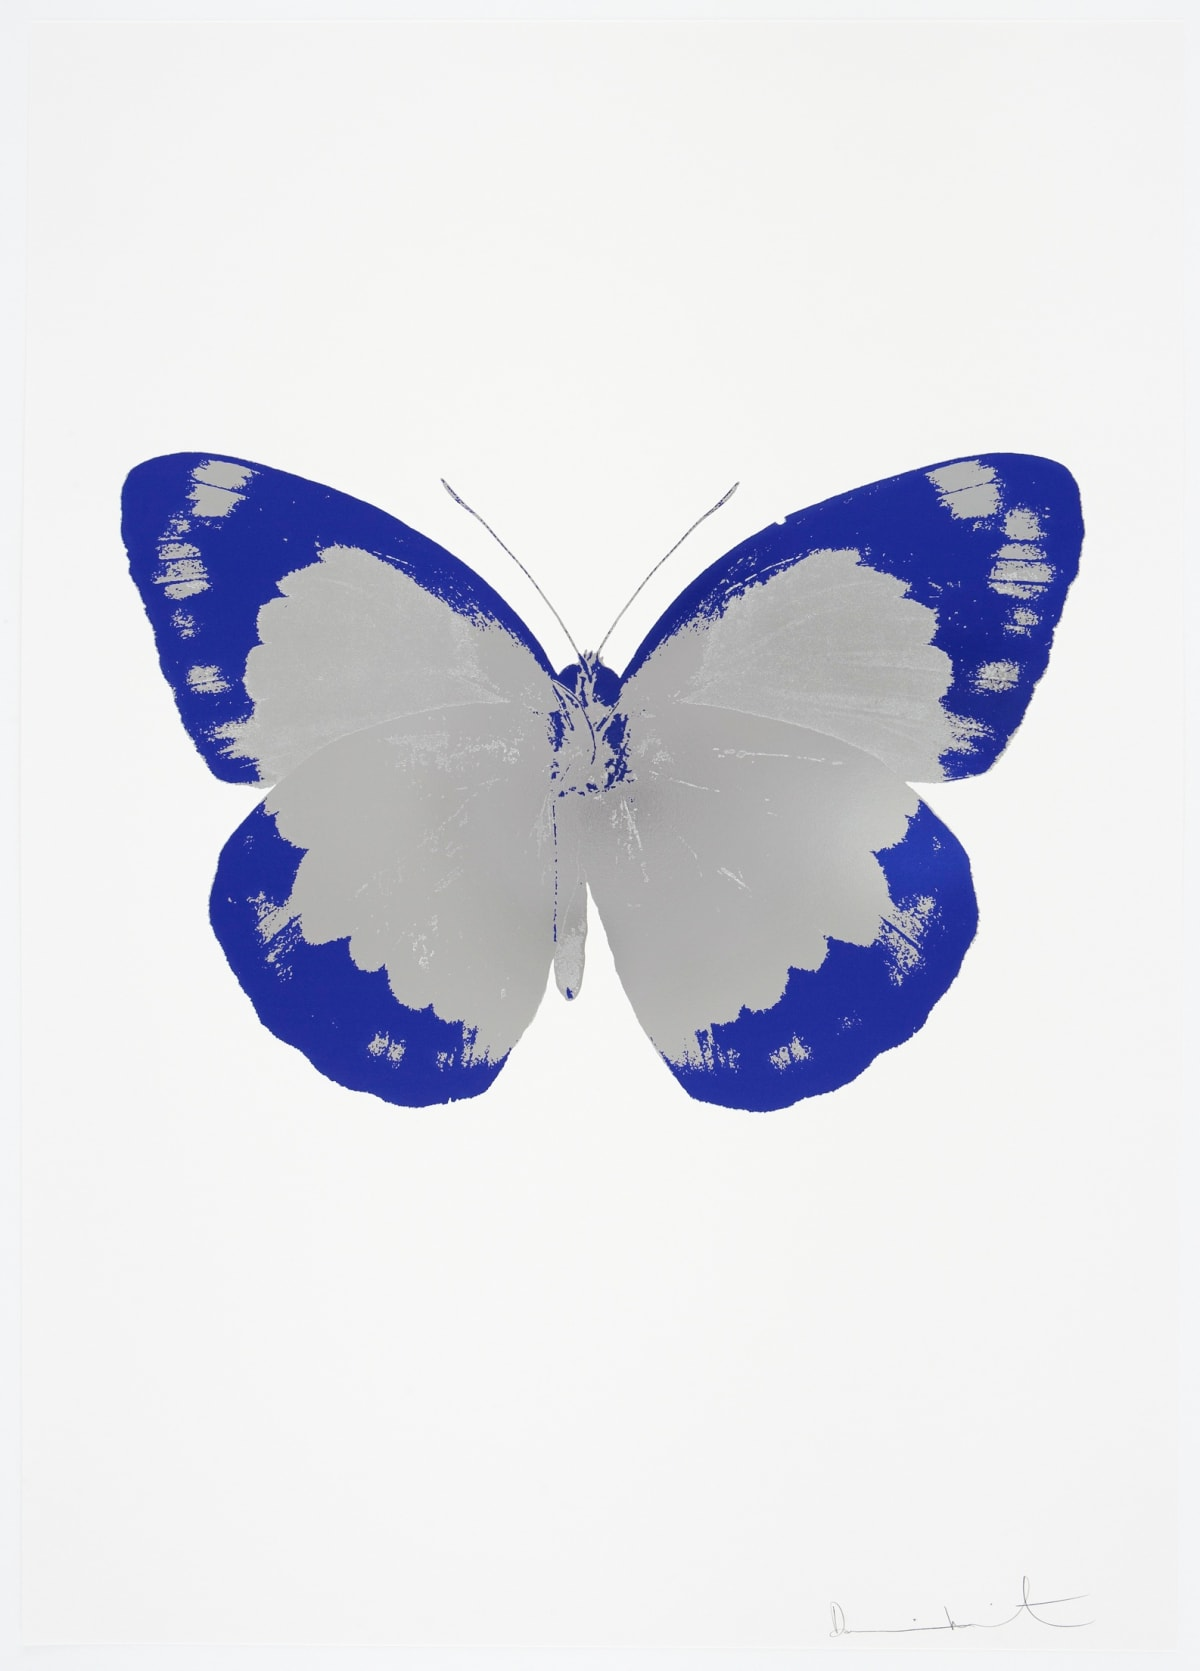 Damien Hirst The Souls II - Silver Gloss/Westminster Blue/Blind Impression, 2010 2 colour foil block on 300gsm Arches 88 archival paper. Signed and numbered. Published by Paul Stolper and Other Criteria 72 x 51cm OC7842 / 658-25 Edition of 15